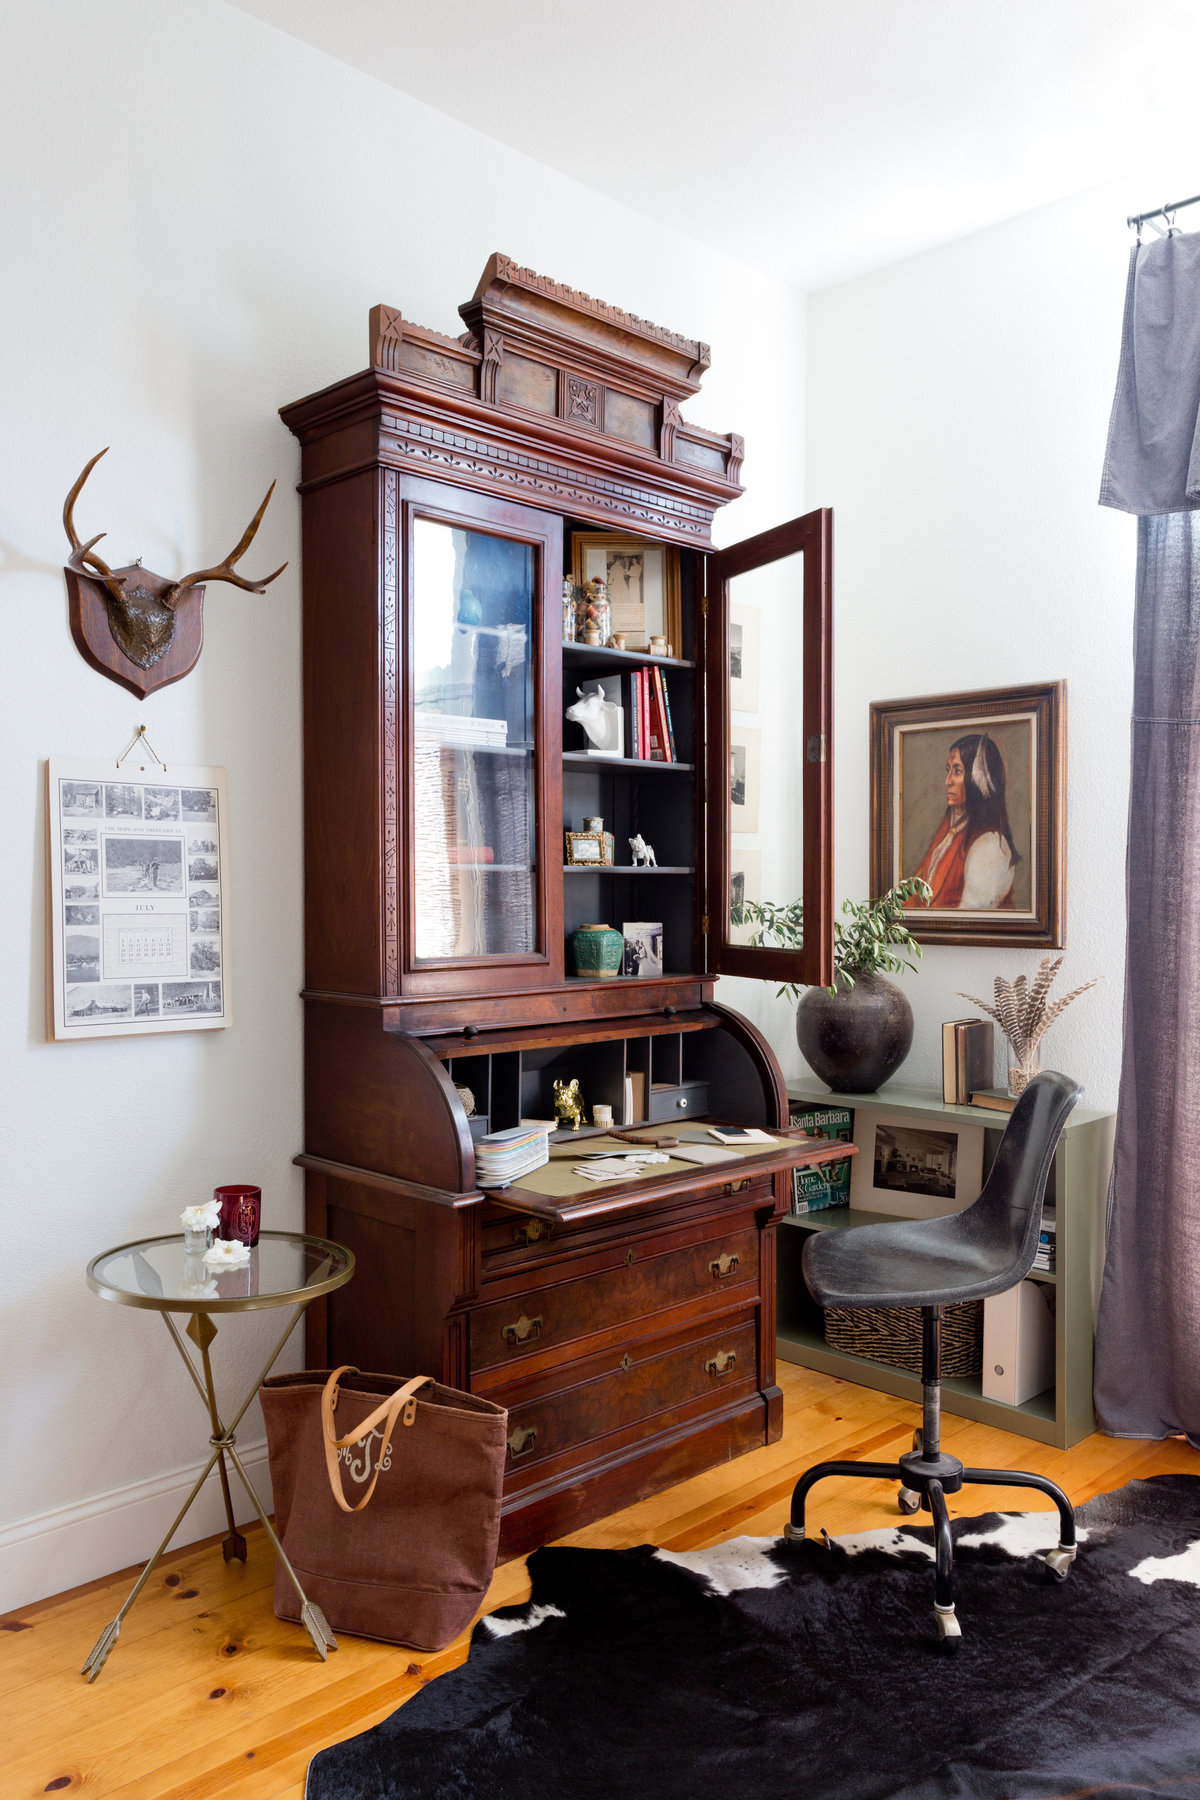 Antique desk and bookcase in the corner of home office